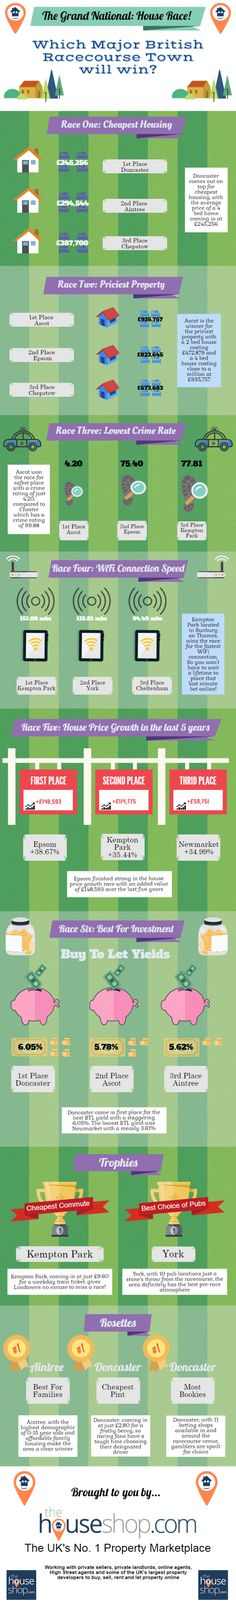 To celebrate The Grand National 2017 we have made this infographic of The Grand National 'House' Race featuring Britain's major racecourse towns, read on to find out which is the best place to live!